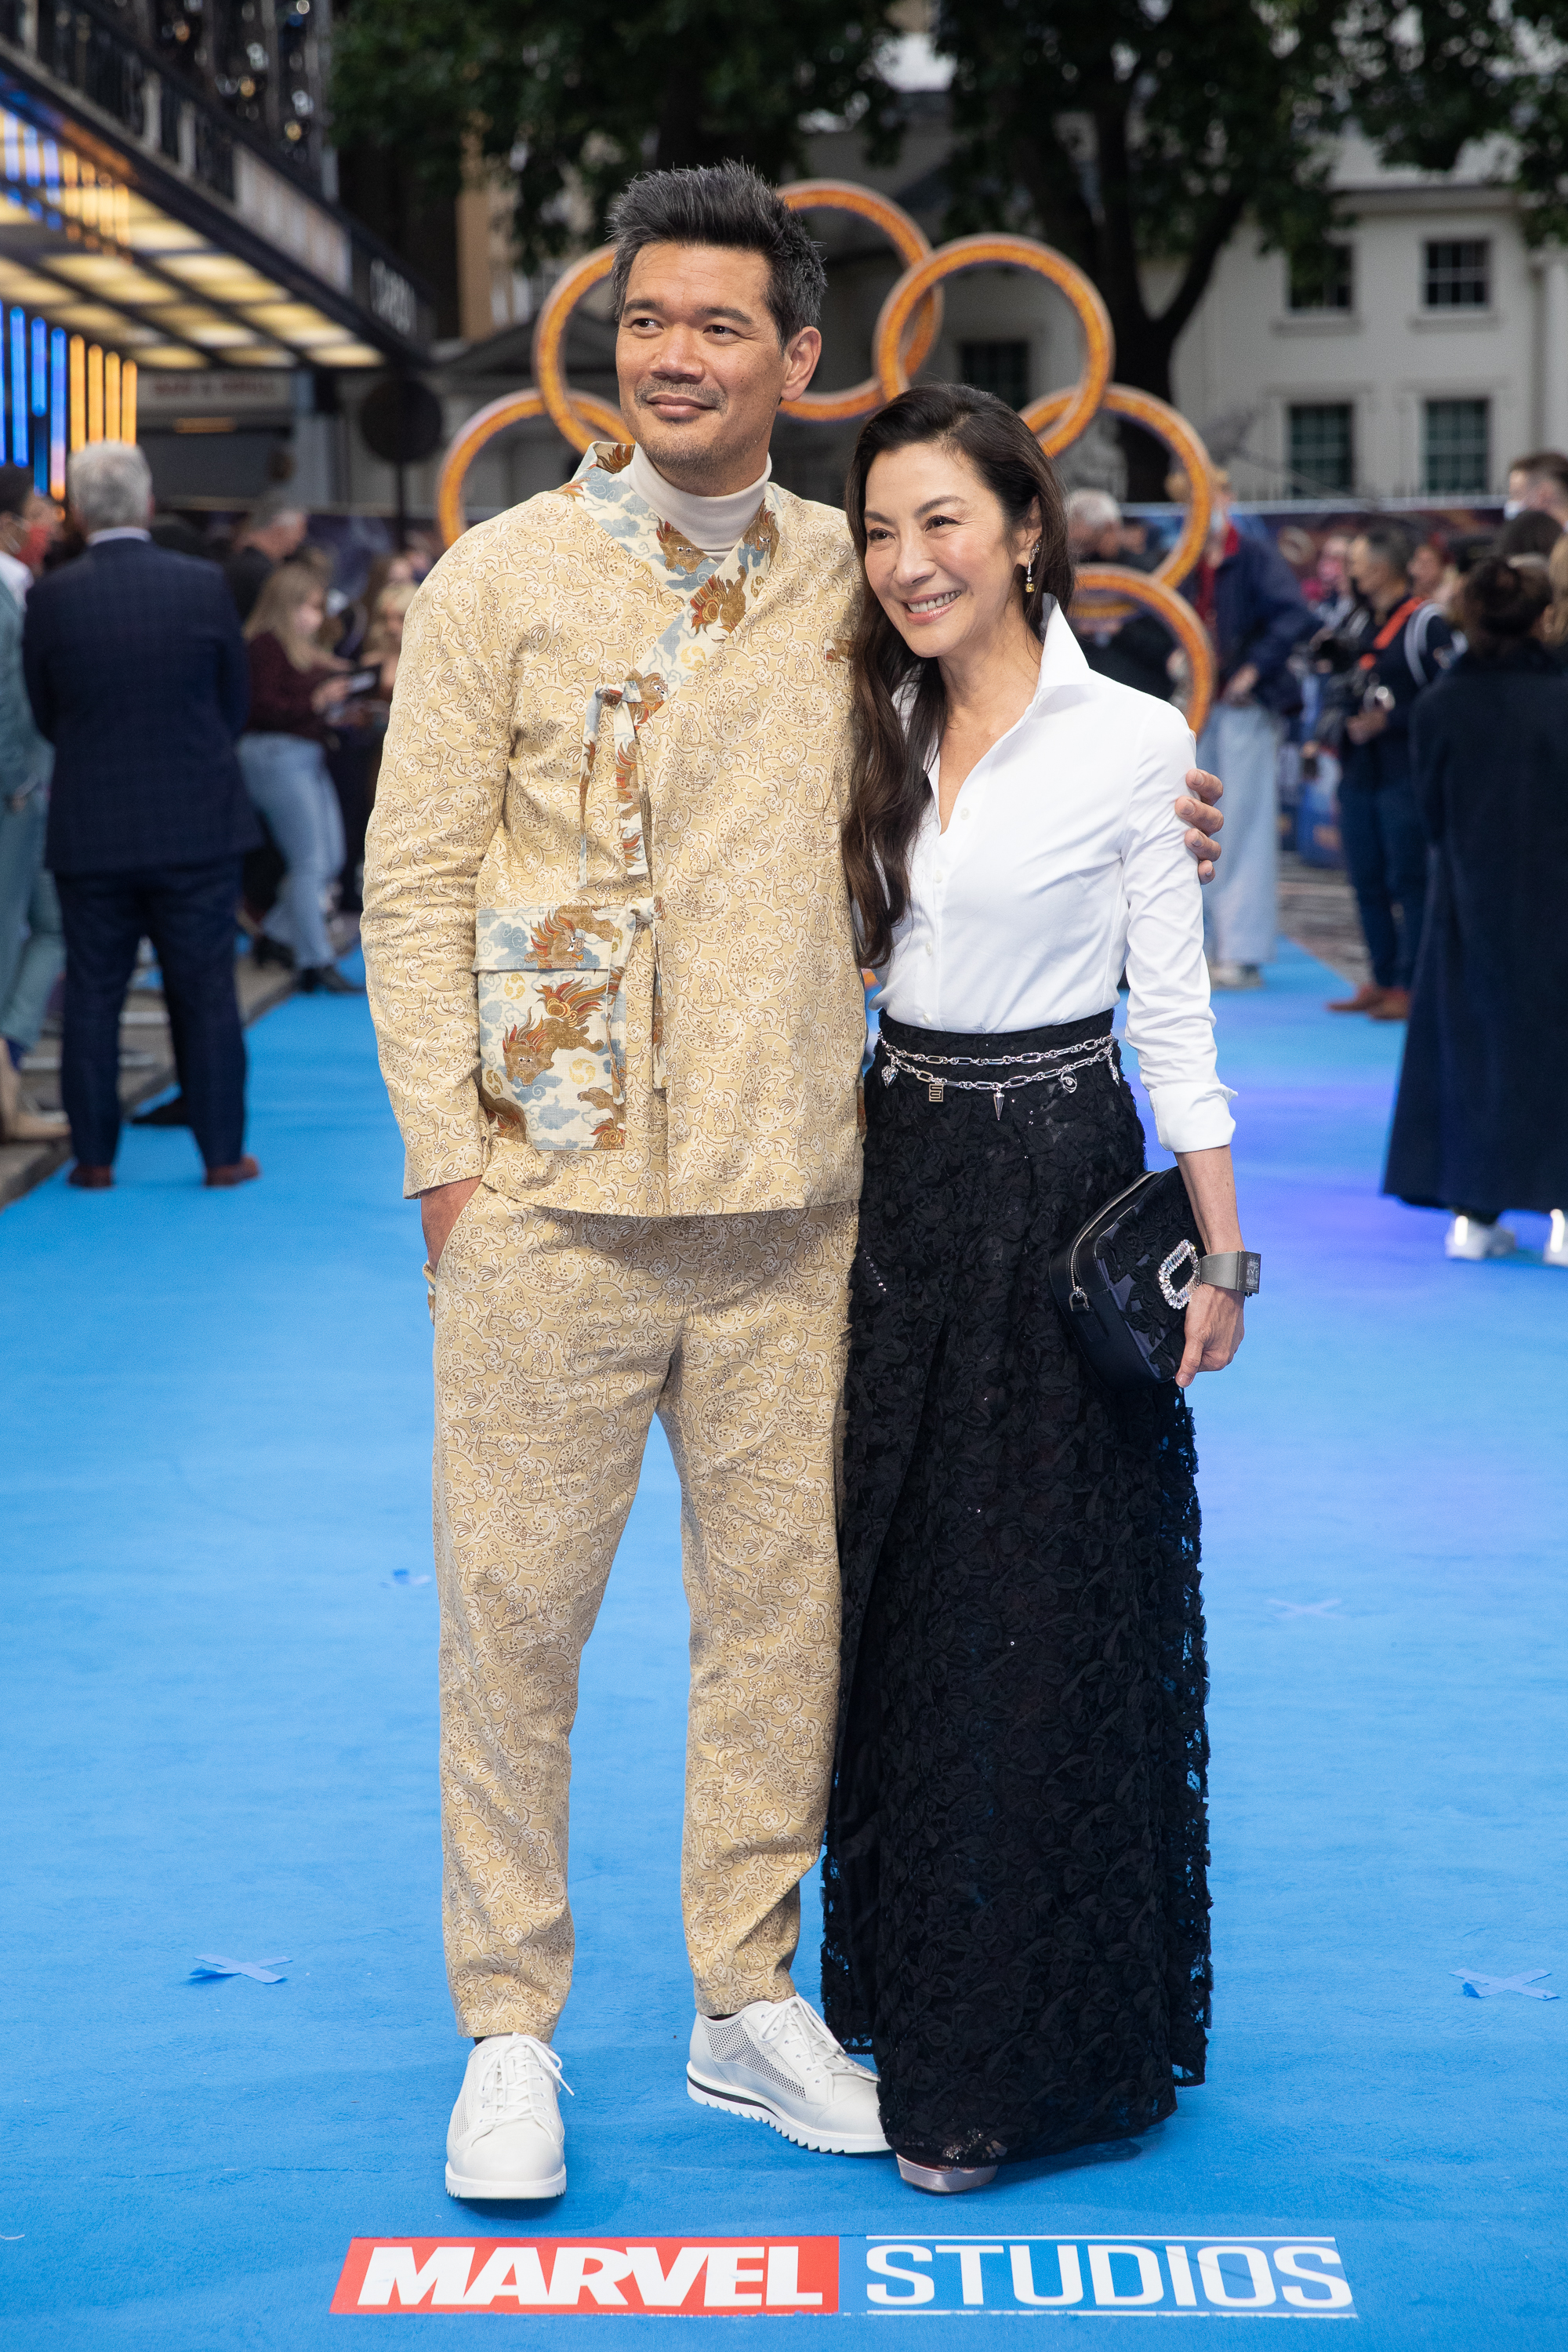 Michelle Yeoh and Destin Daniel Cretton at an event for Shang-Chi and the Legend of the Ten Rings (2021)